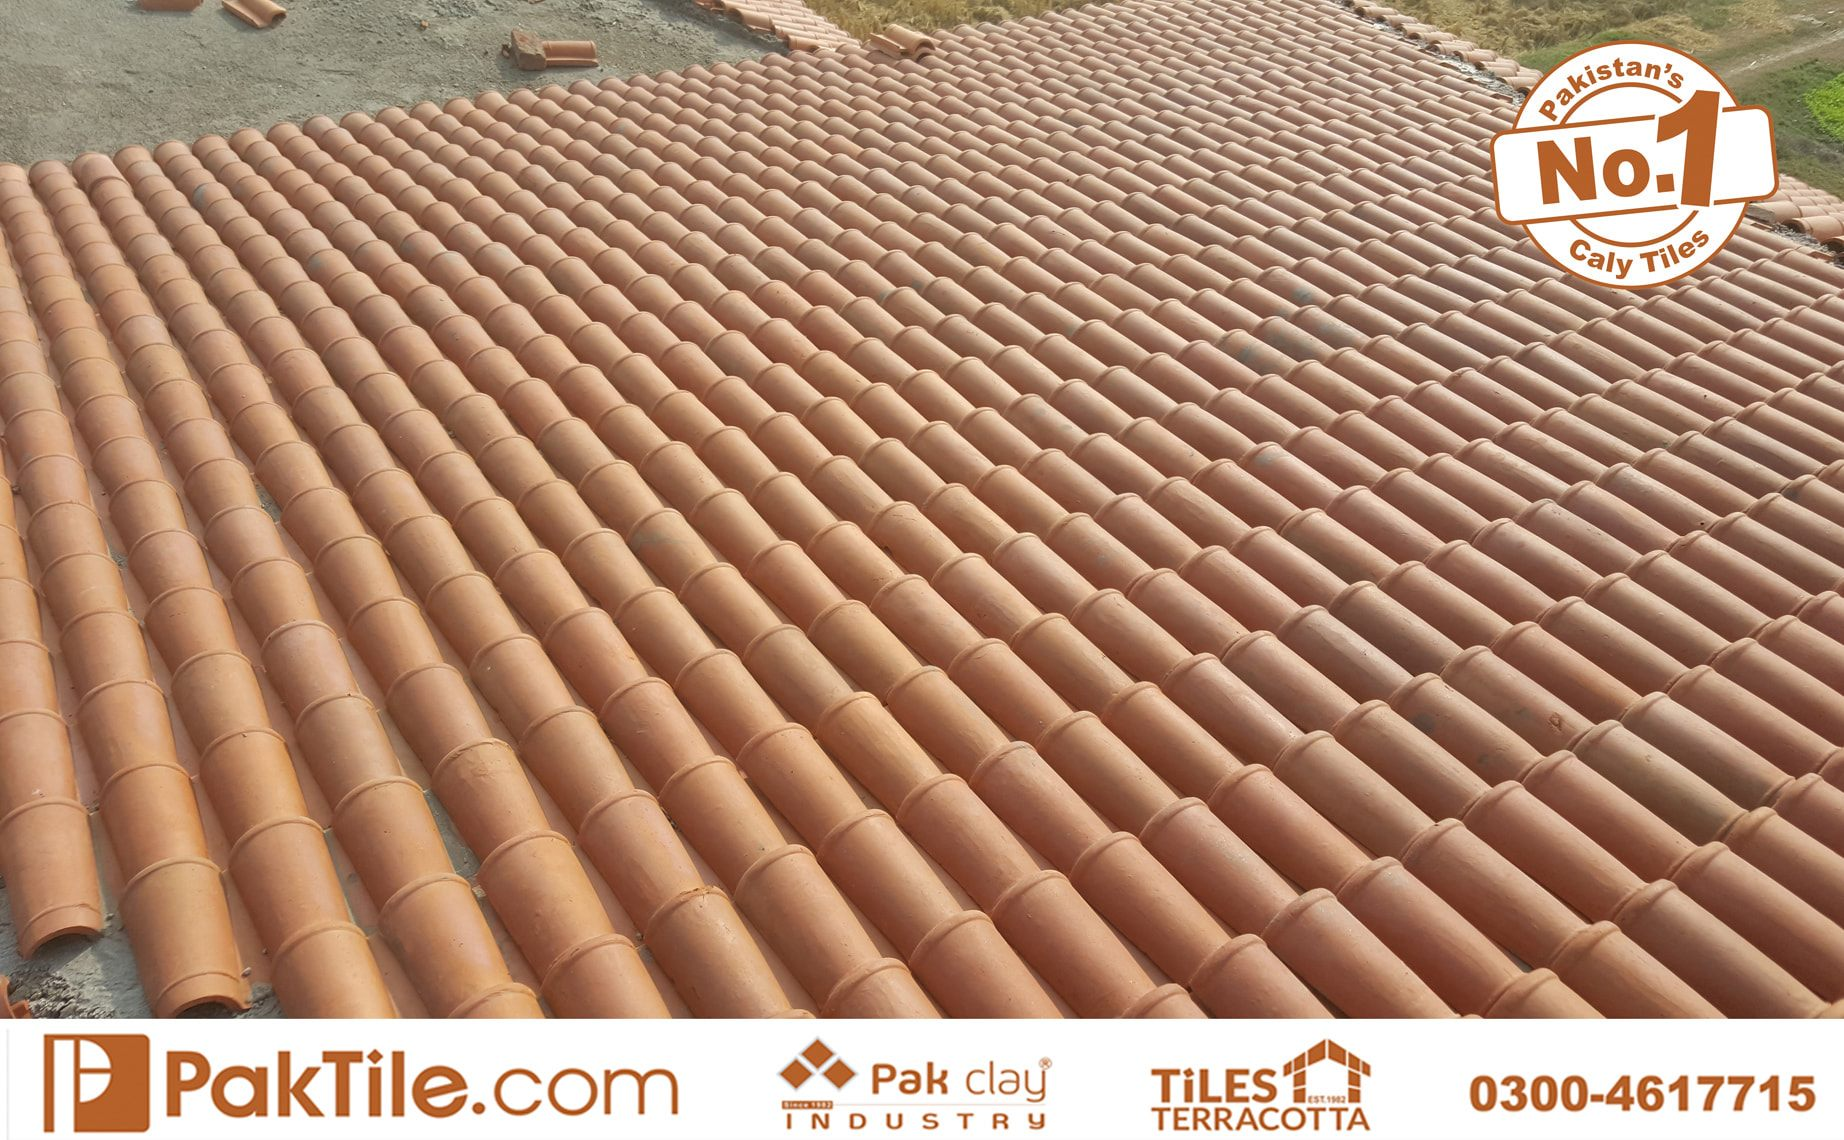 6 1 Pak Clay Terracotta Roofing Khaprail Tiles Price in Lahore Images.